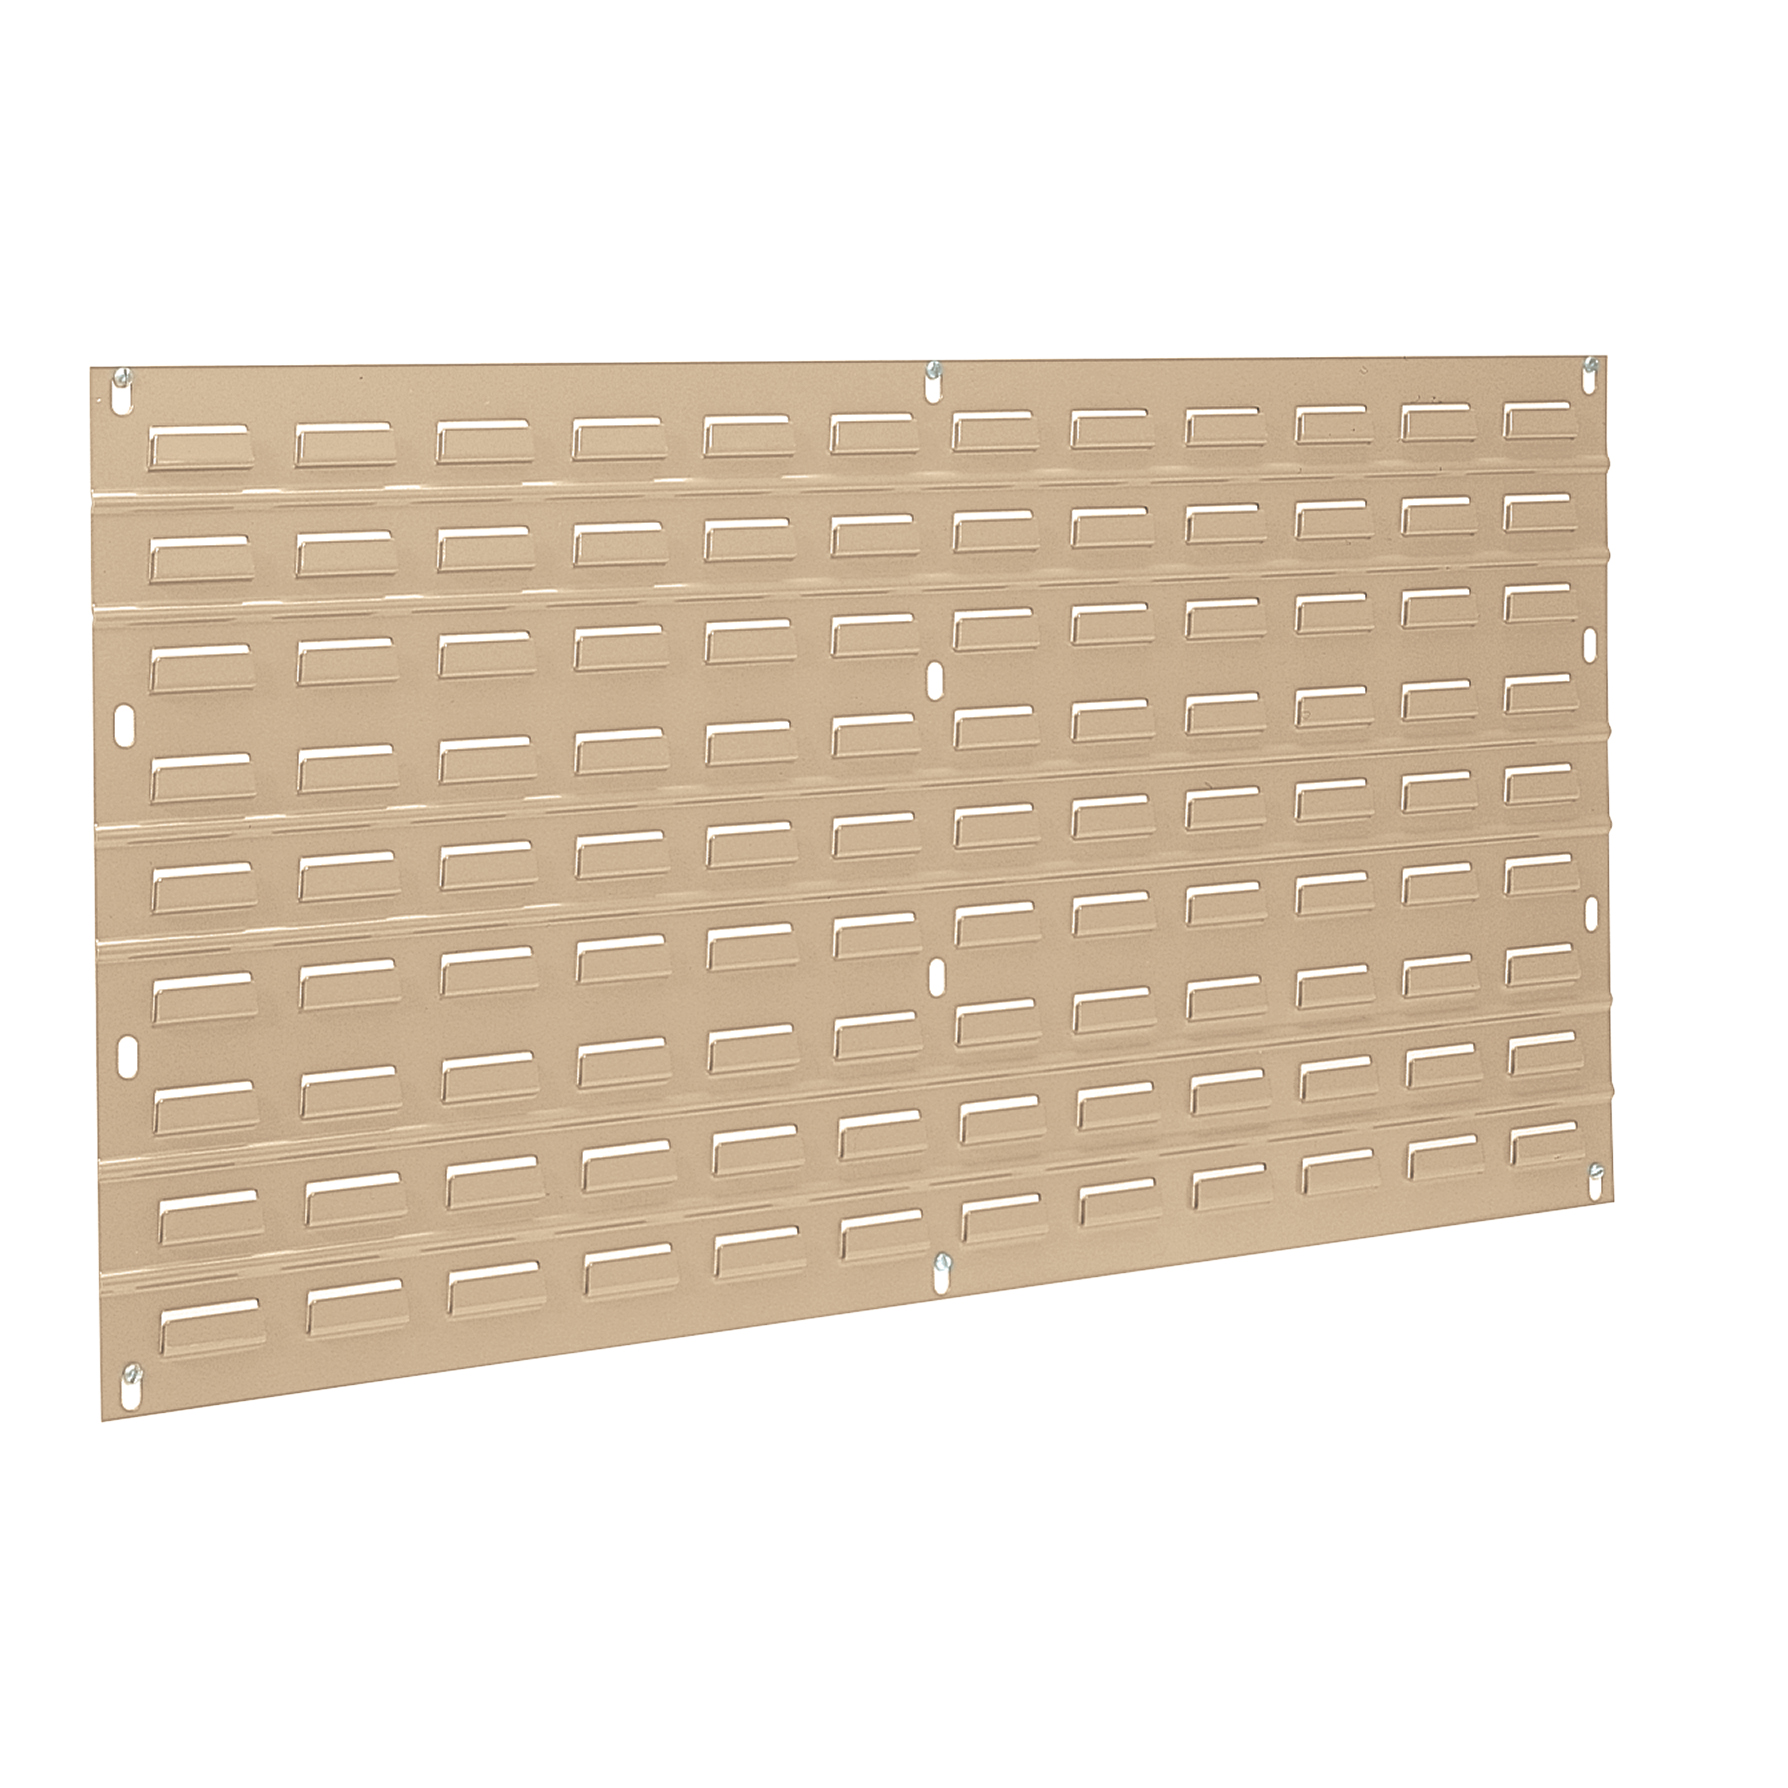 Louvered Wall Panel, 35-3/4 x 19, Beige (30636BEIGE).  This item sold in carton quantities of 4.